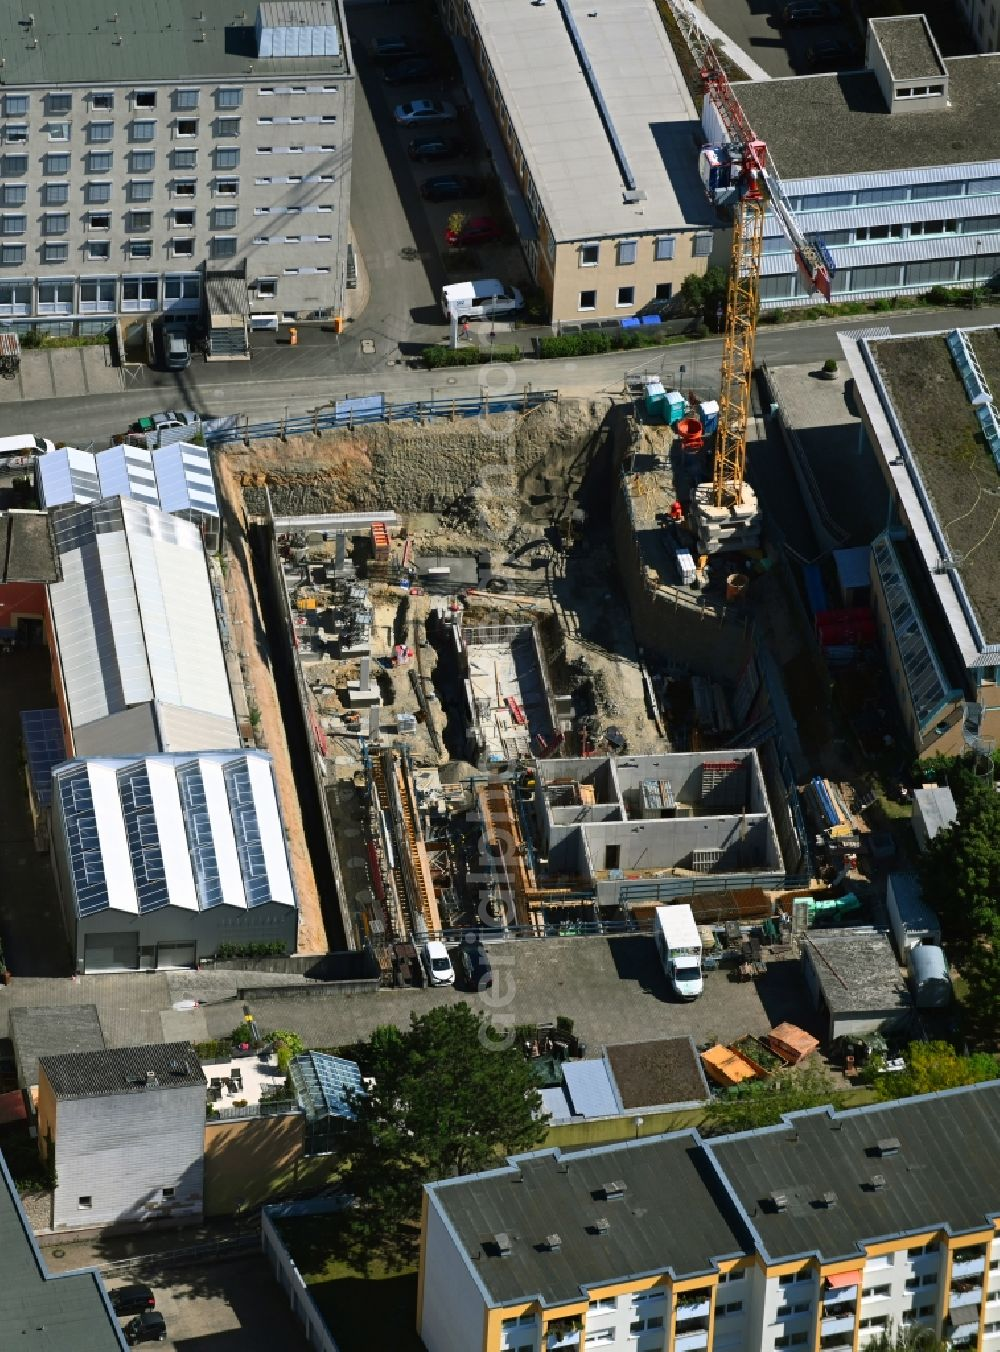 Würzburg from above - Construction site to build a new multi-family residential complex in the district Zellerau in Wuerzburg in the state Bavaria, Germany